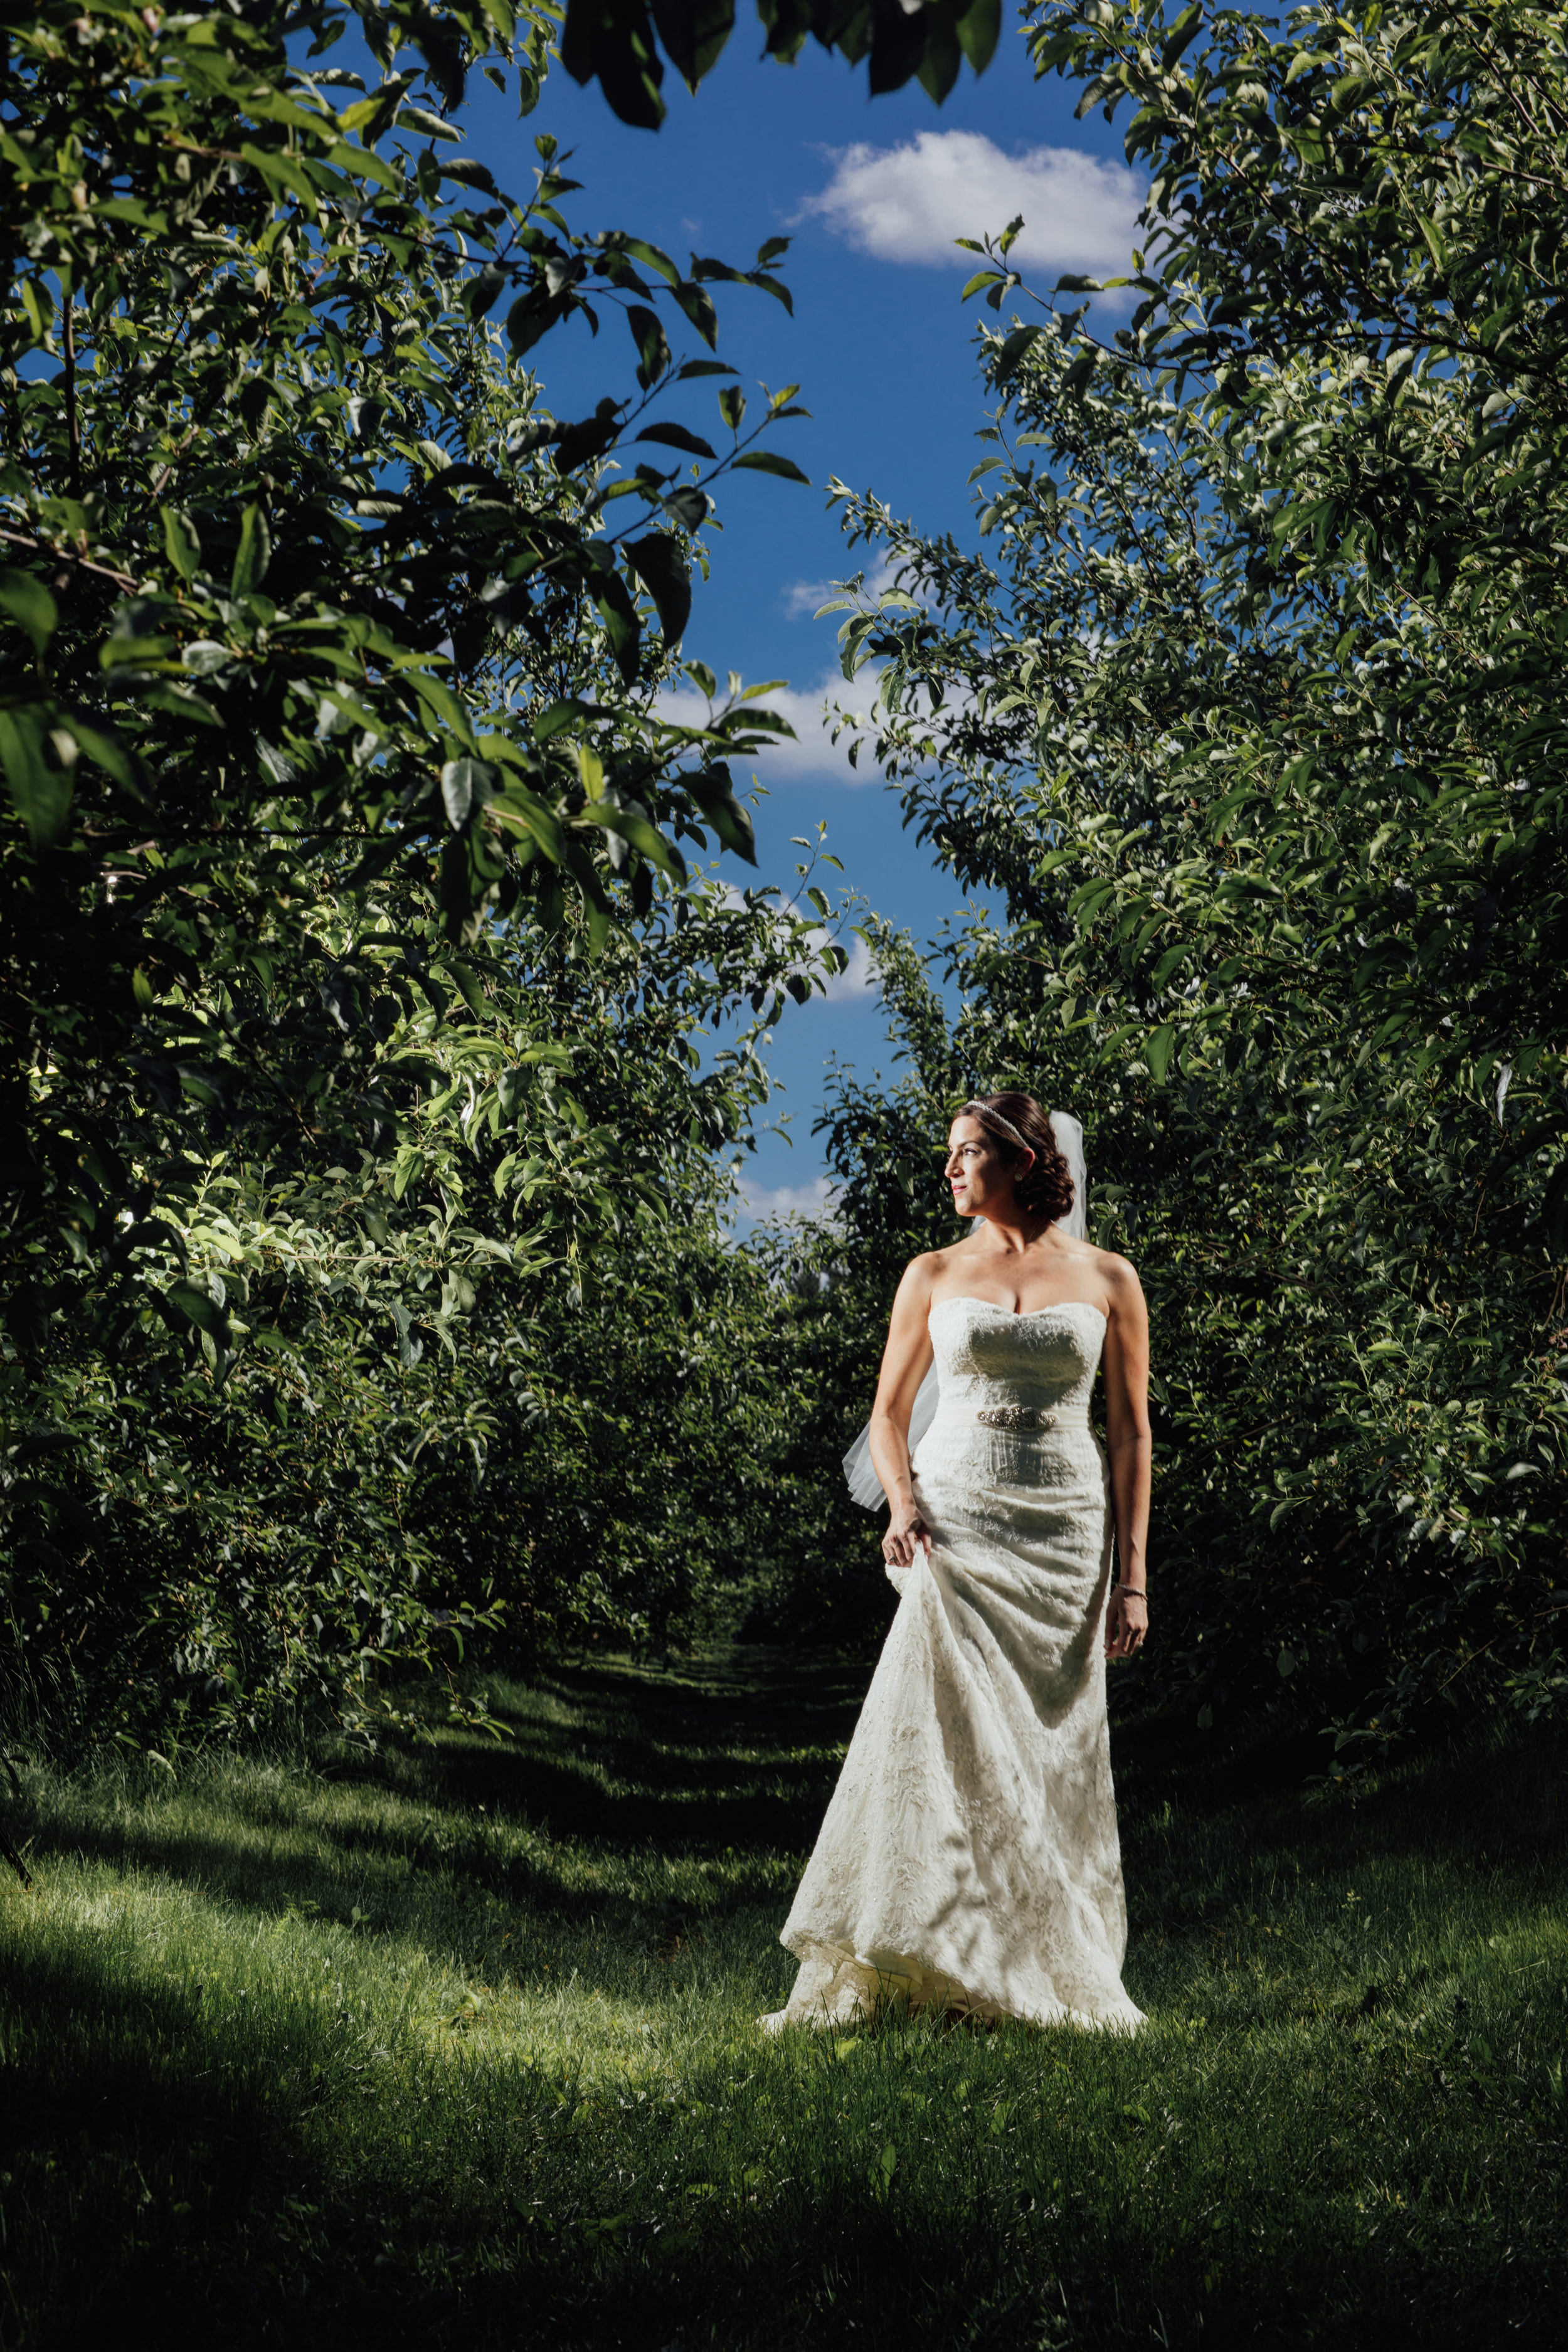 Bride at County Line Orchard.jpg